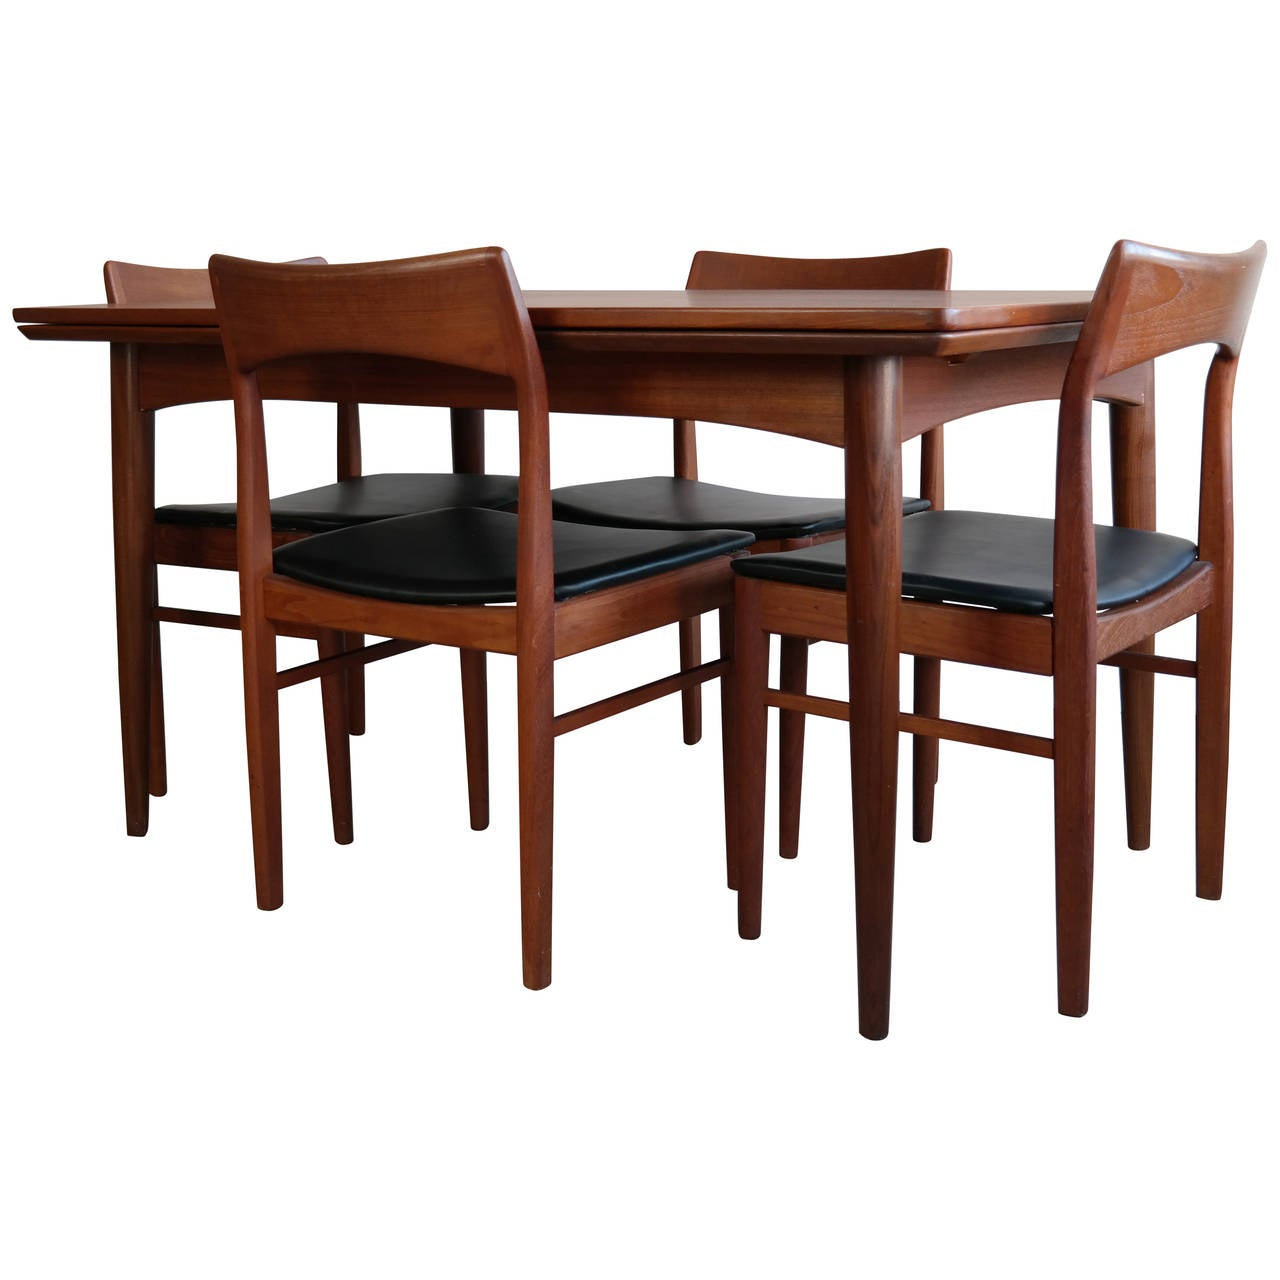 Danish modern dining set in teak at 1stdibs for Modern dining furniture